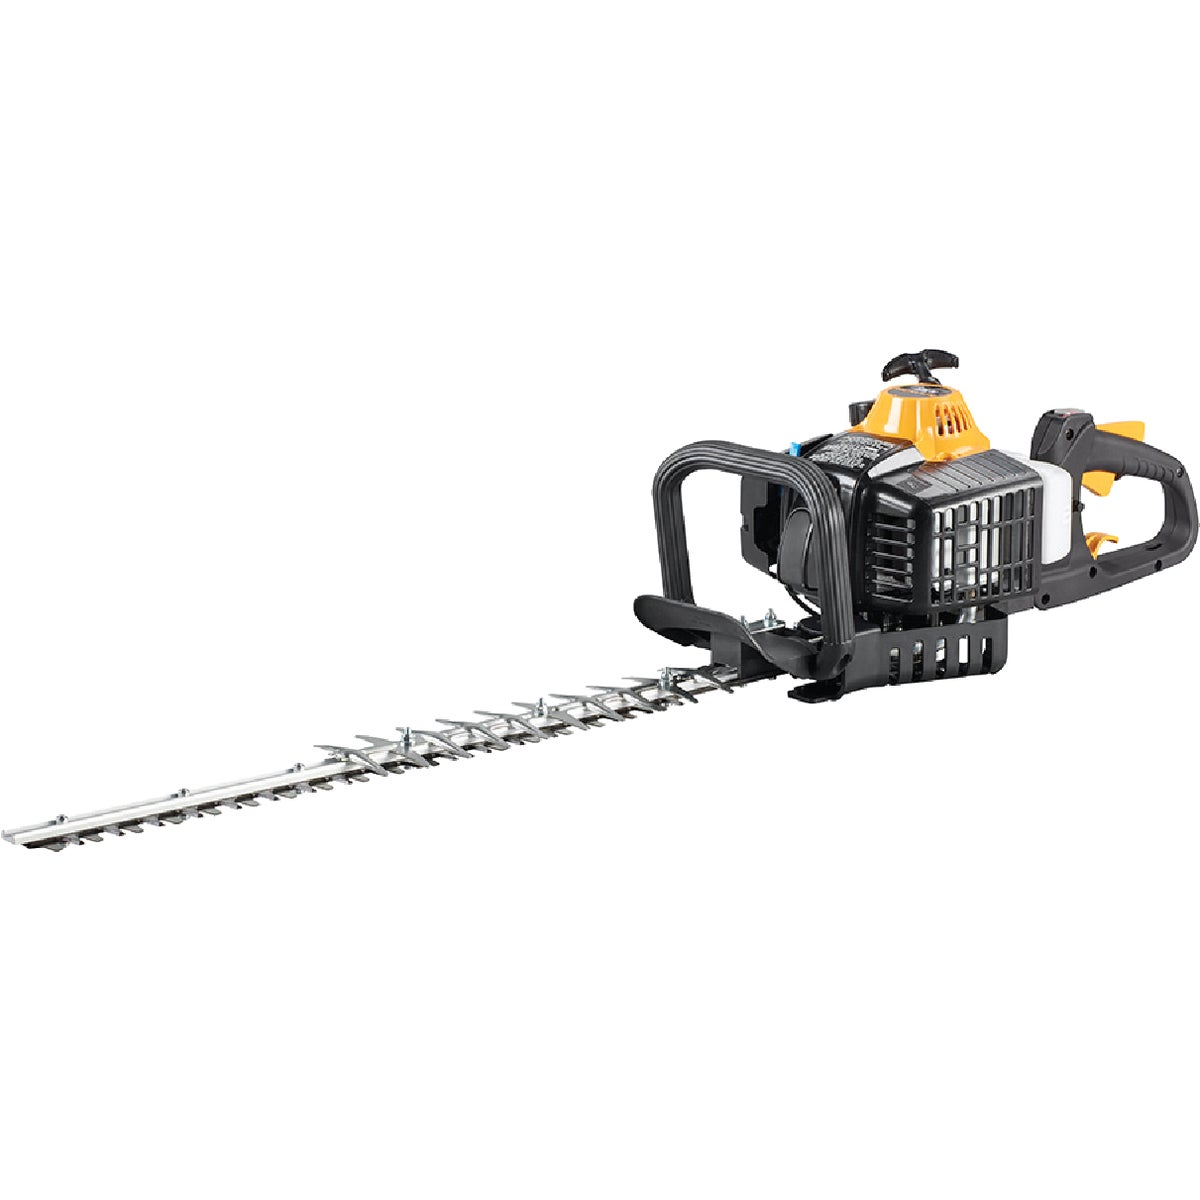 "22"" GAS HEDGE TRIMMER - 952711803 by Poulan"